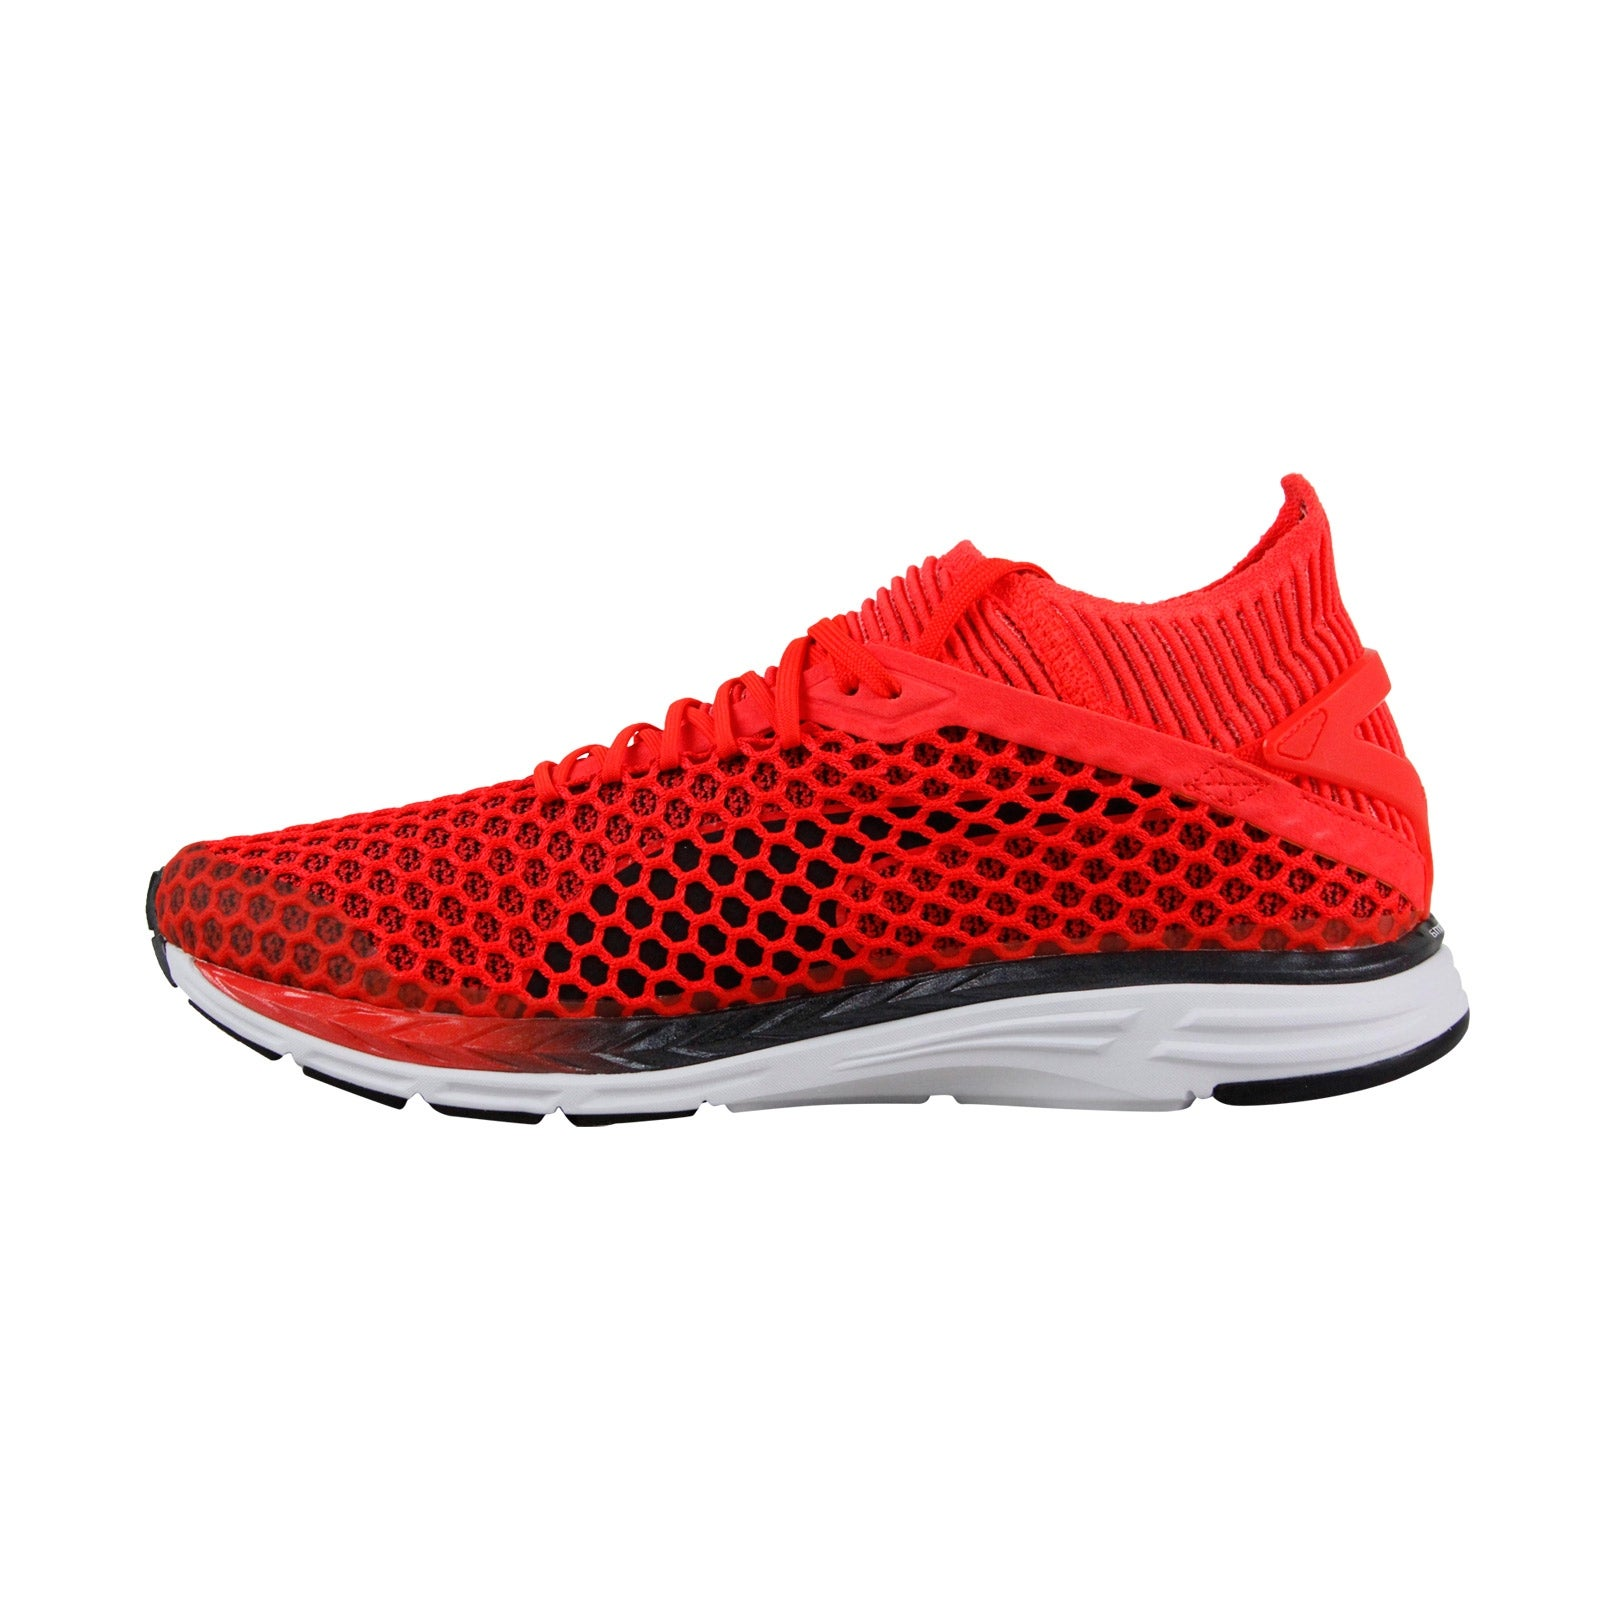 0ed7526c01c5 Shop Puma Speed Ignite Netfit 2 Mens Red Mesh Athletic Lace Up Running Shoes  - Free Shipping Today - Overstock - 25586684